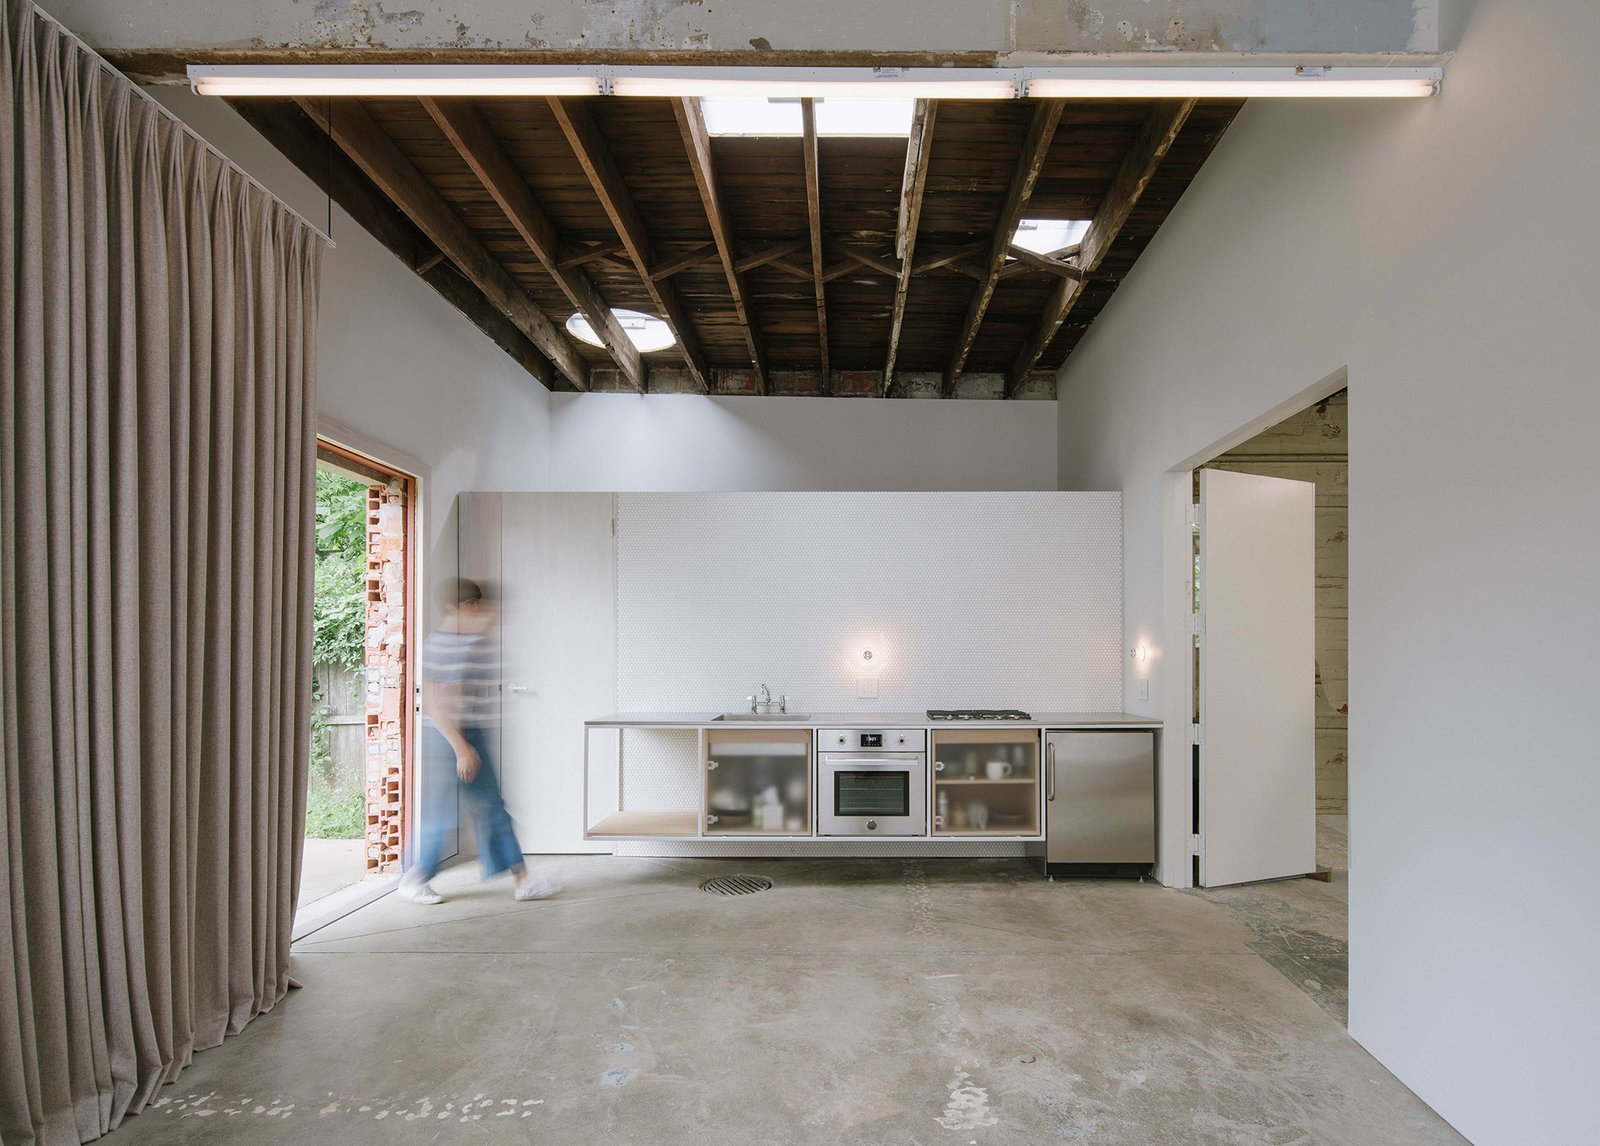 A 1920s Masonry Garage Is Reborn as a Flexible Live/Work Space